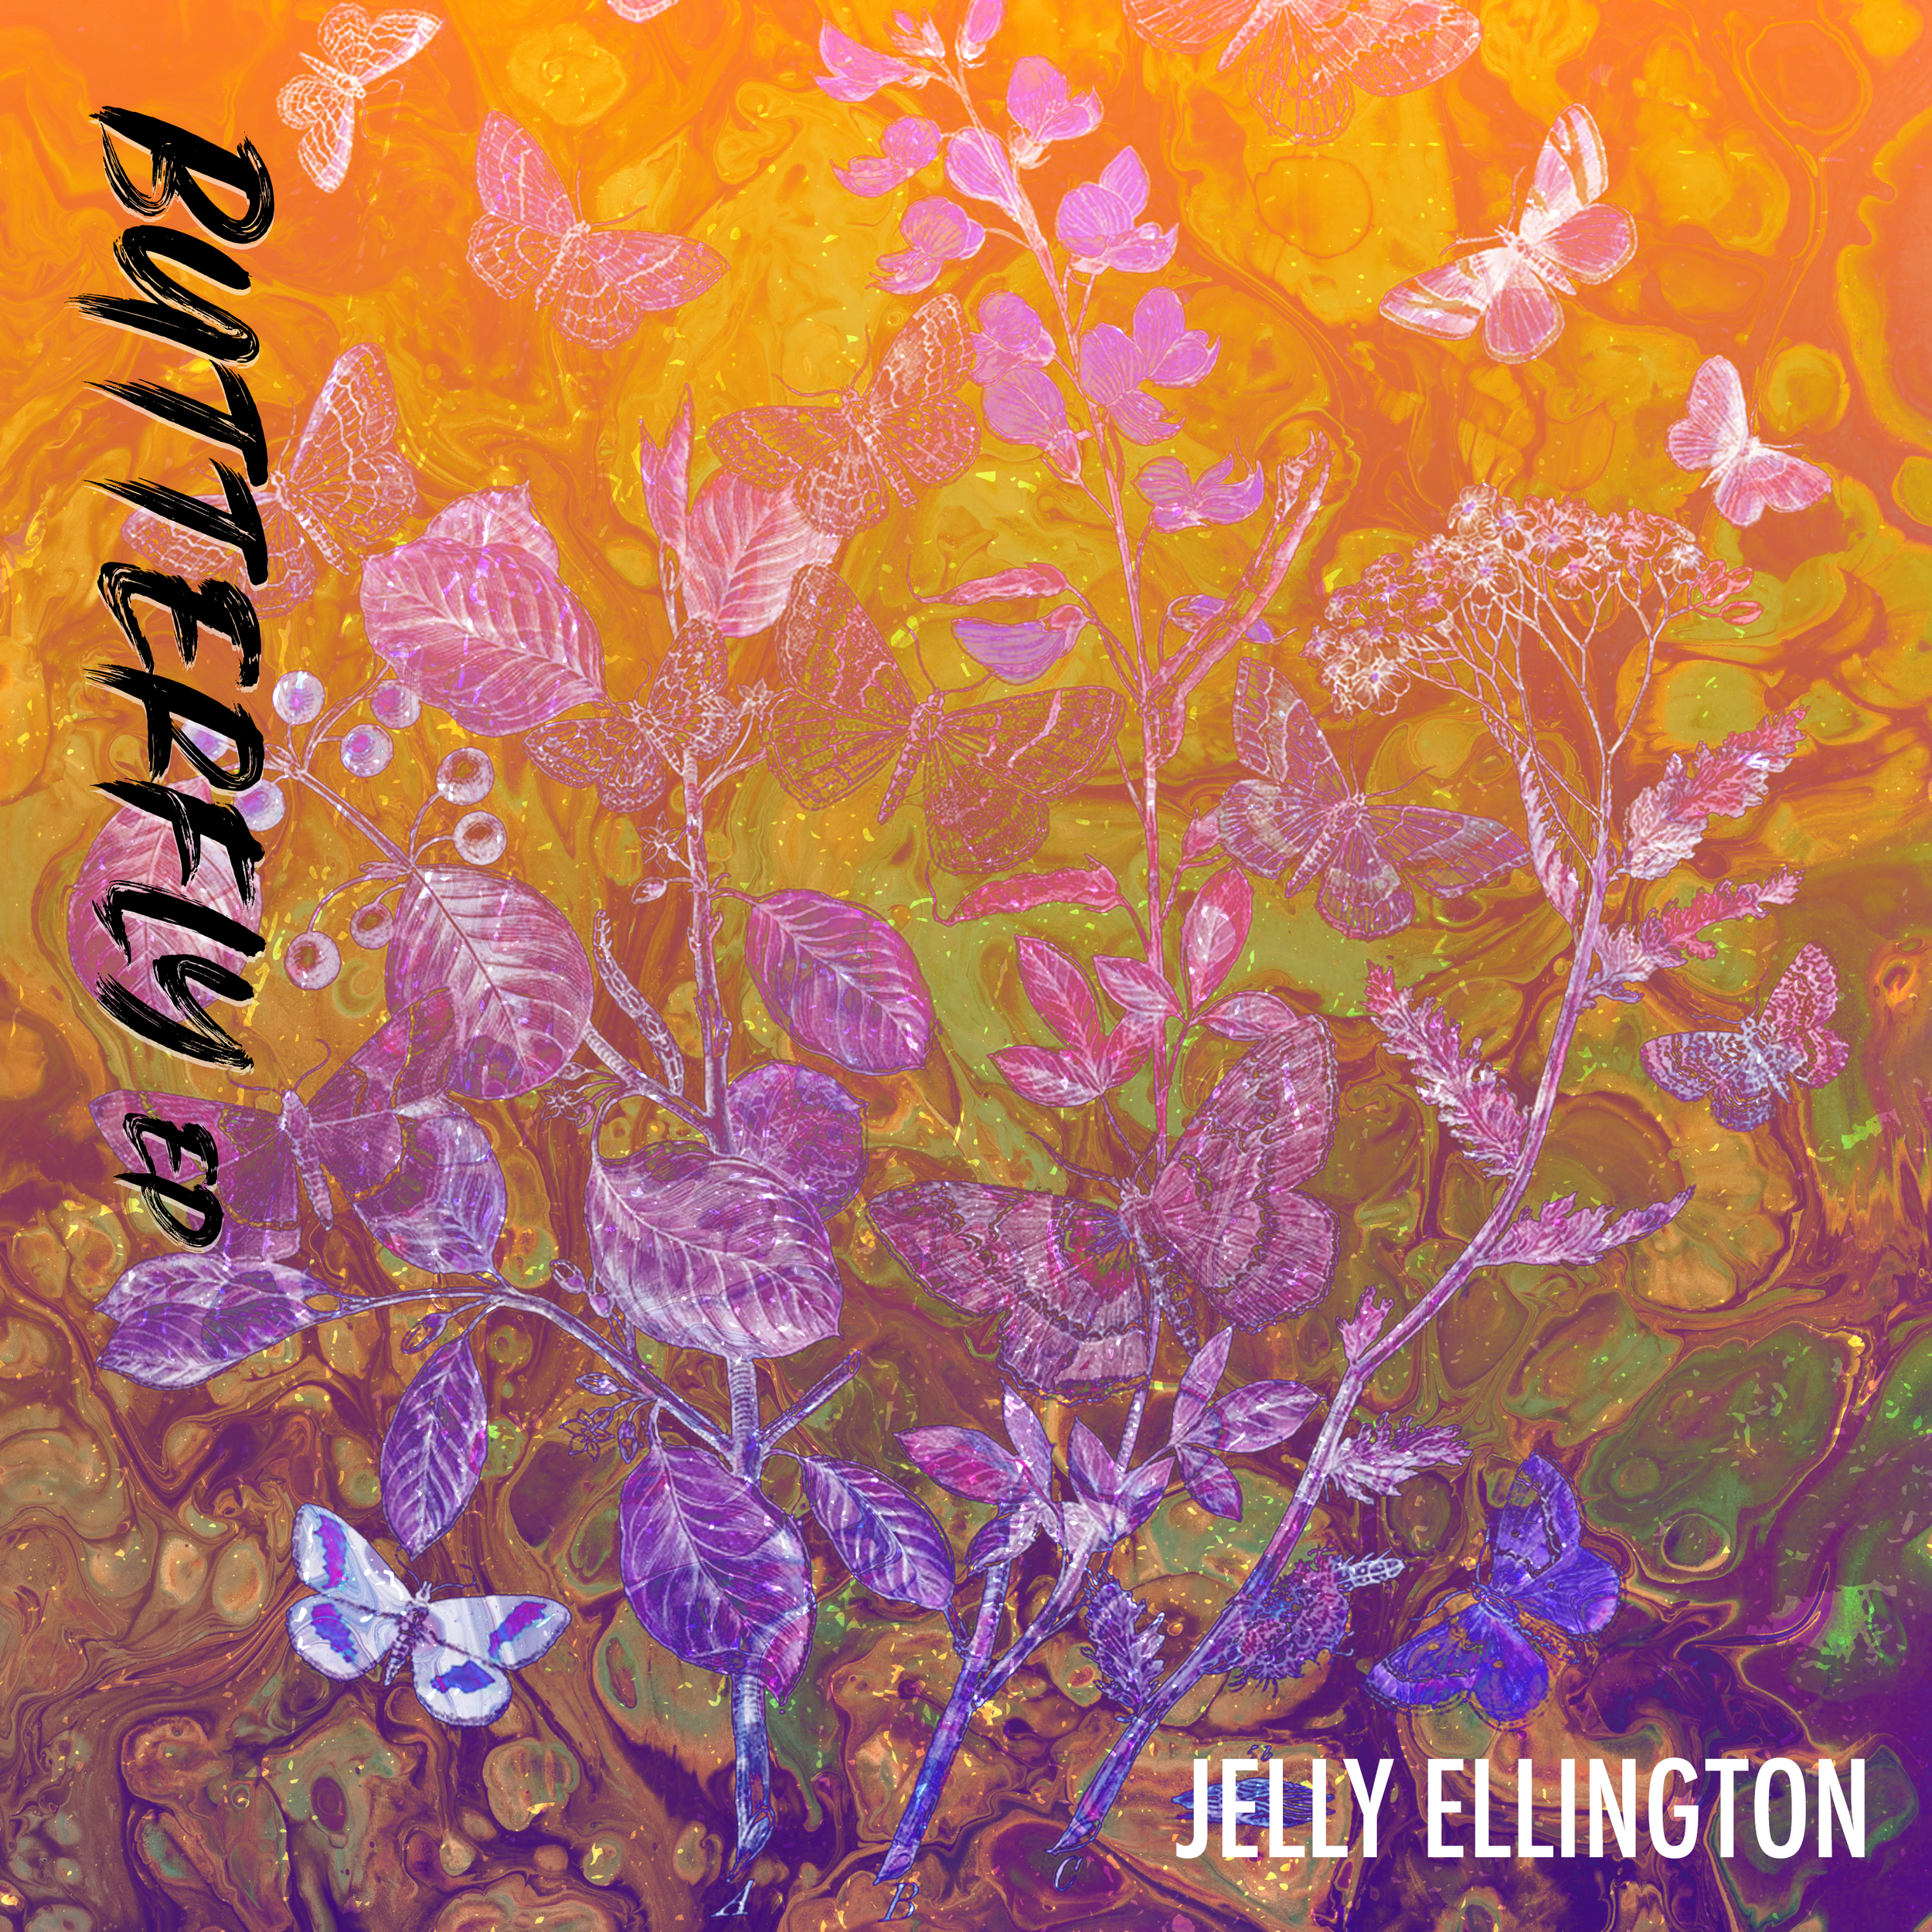 """- CO PRODUCED: Dane Orr (Anna Wise, Sonnymoon) and Jelly EllingtonMIXED: Dane OrrMASTERED: Nick Landis at Tera Nova Digital Audio Inc.EP ART: Lauren Santorio at Renzo DesignsLISTEN HEREJelly Ellington redefines himself with his sophomore EP Butterfly. Produced by Dane Orr (Anna Wise, Sonnymoon), the four track EP takes listeners on a sonic adventure, blending gritty guitar riffs and catchy melodies with electronic beats and jazzy bass lines. The EP is a bold step in a new musical direction from Jelly's signature blues rock style, as his classical and jazz influences shine more into the limelight in track's like """"Best of Me"""" and """"Fade Away."""" The wall of guitars and grungy chorus shout out loud his mission in this EP: growth is found in """"never fearing the unknown.""""""""Jelly Ellington continues to impress and evolve with his new sounds while staying true to his rock roots."""" — 512 Radio host Patrick Davis, 105.3 The Bat Austin""""You won't be disappointed.""""— Keep Walking MusicTRACKS:1. Butterfly2. Fade Away3. Best of Me4. ChristabelCURRENTLY RELEASED:"""